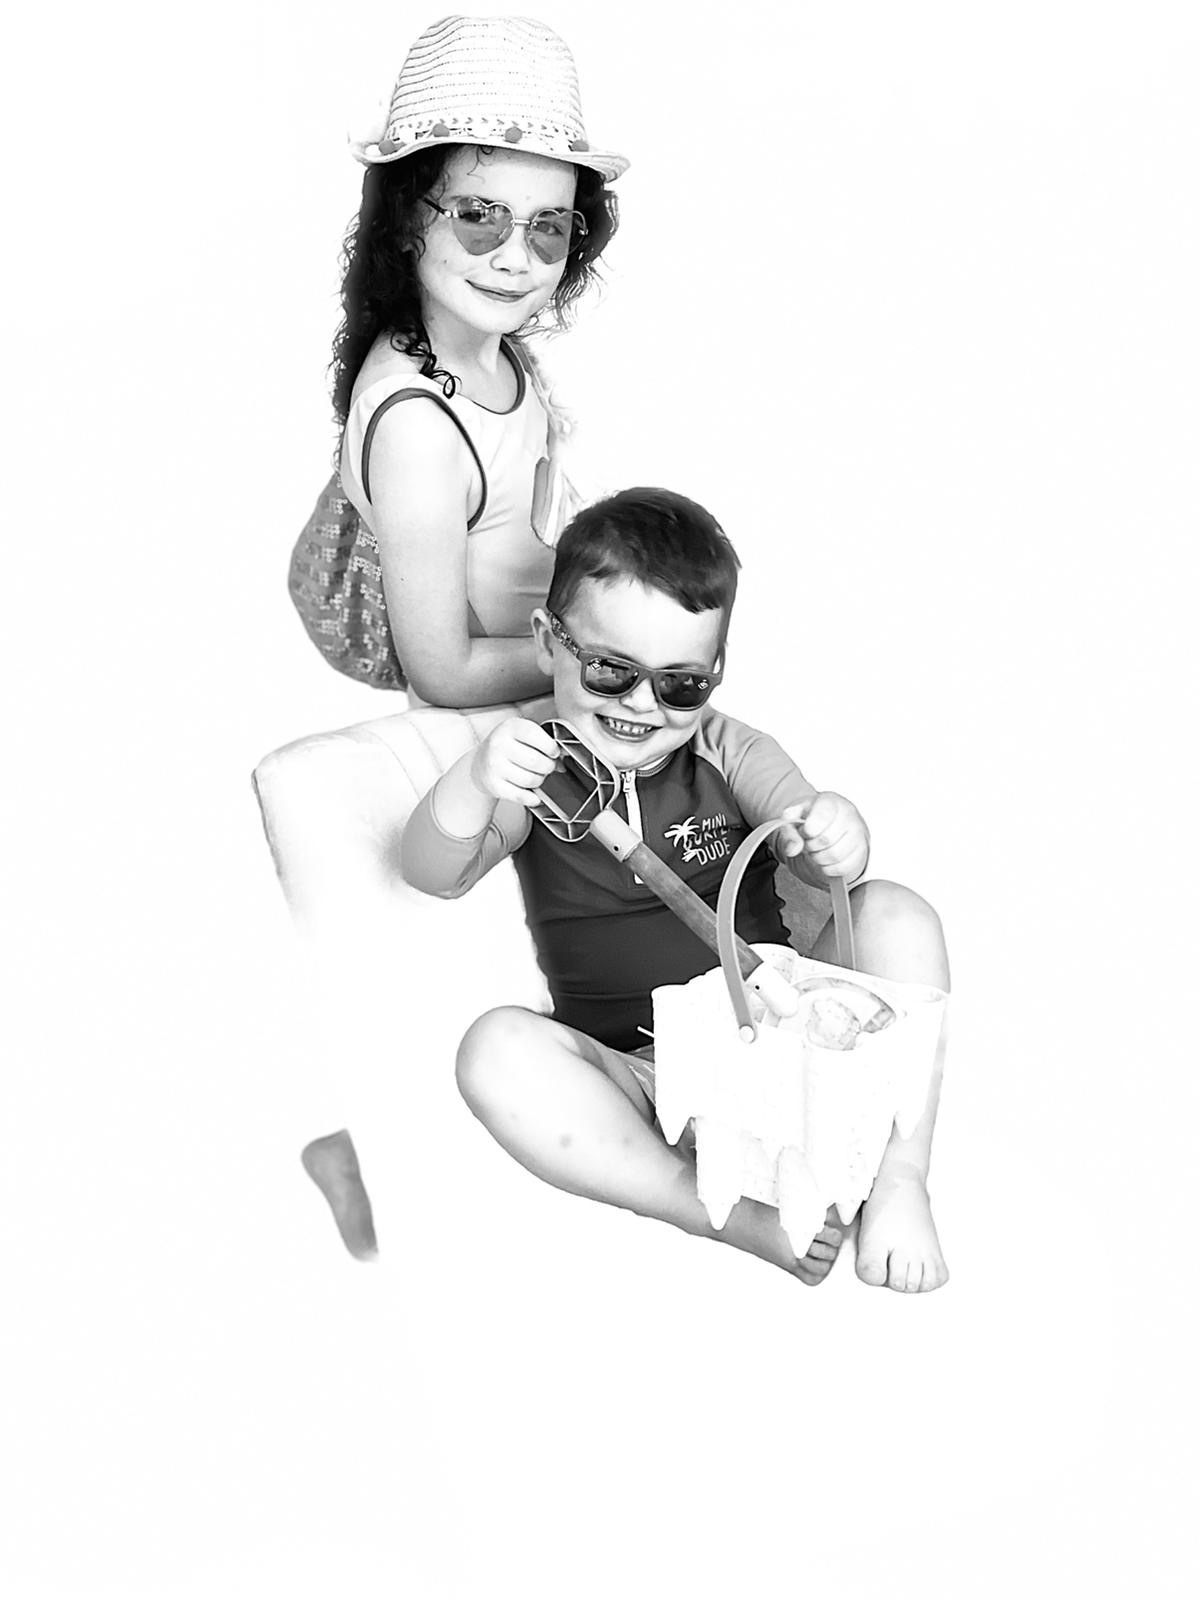 Ciara's submission to the Great British Photography Challenge shows her children, Ellie and Donovan, in beach gear in black and white.